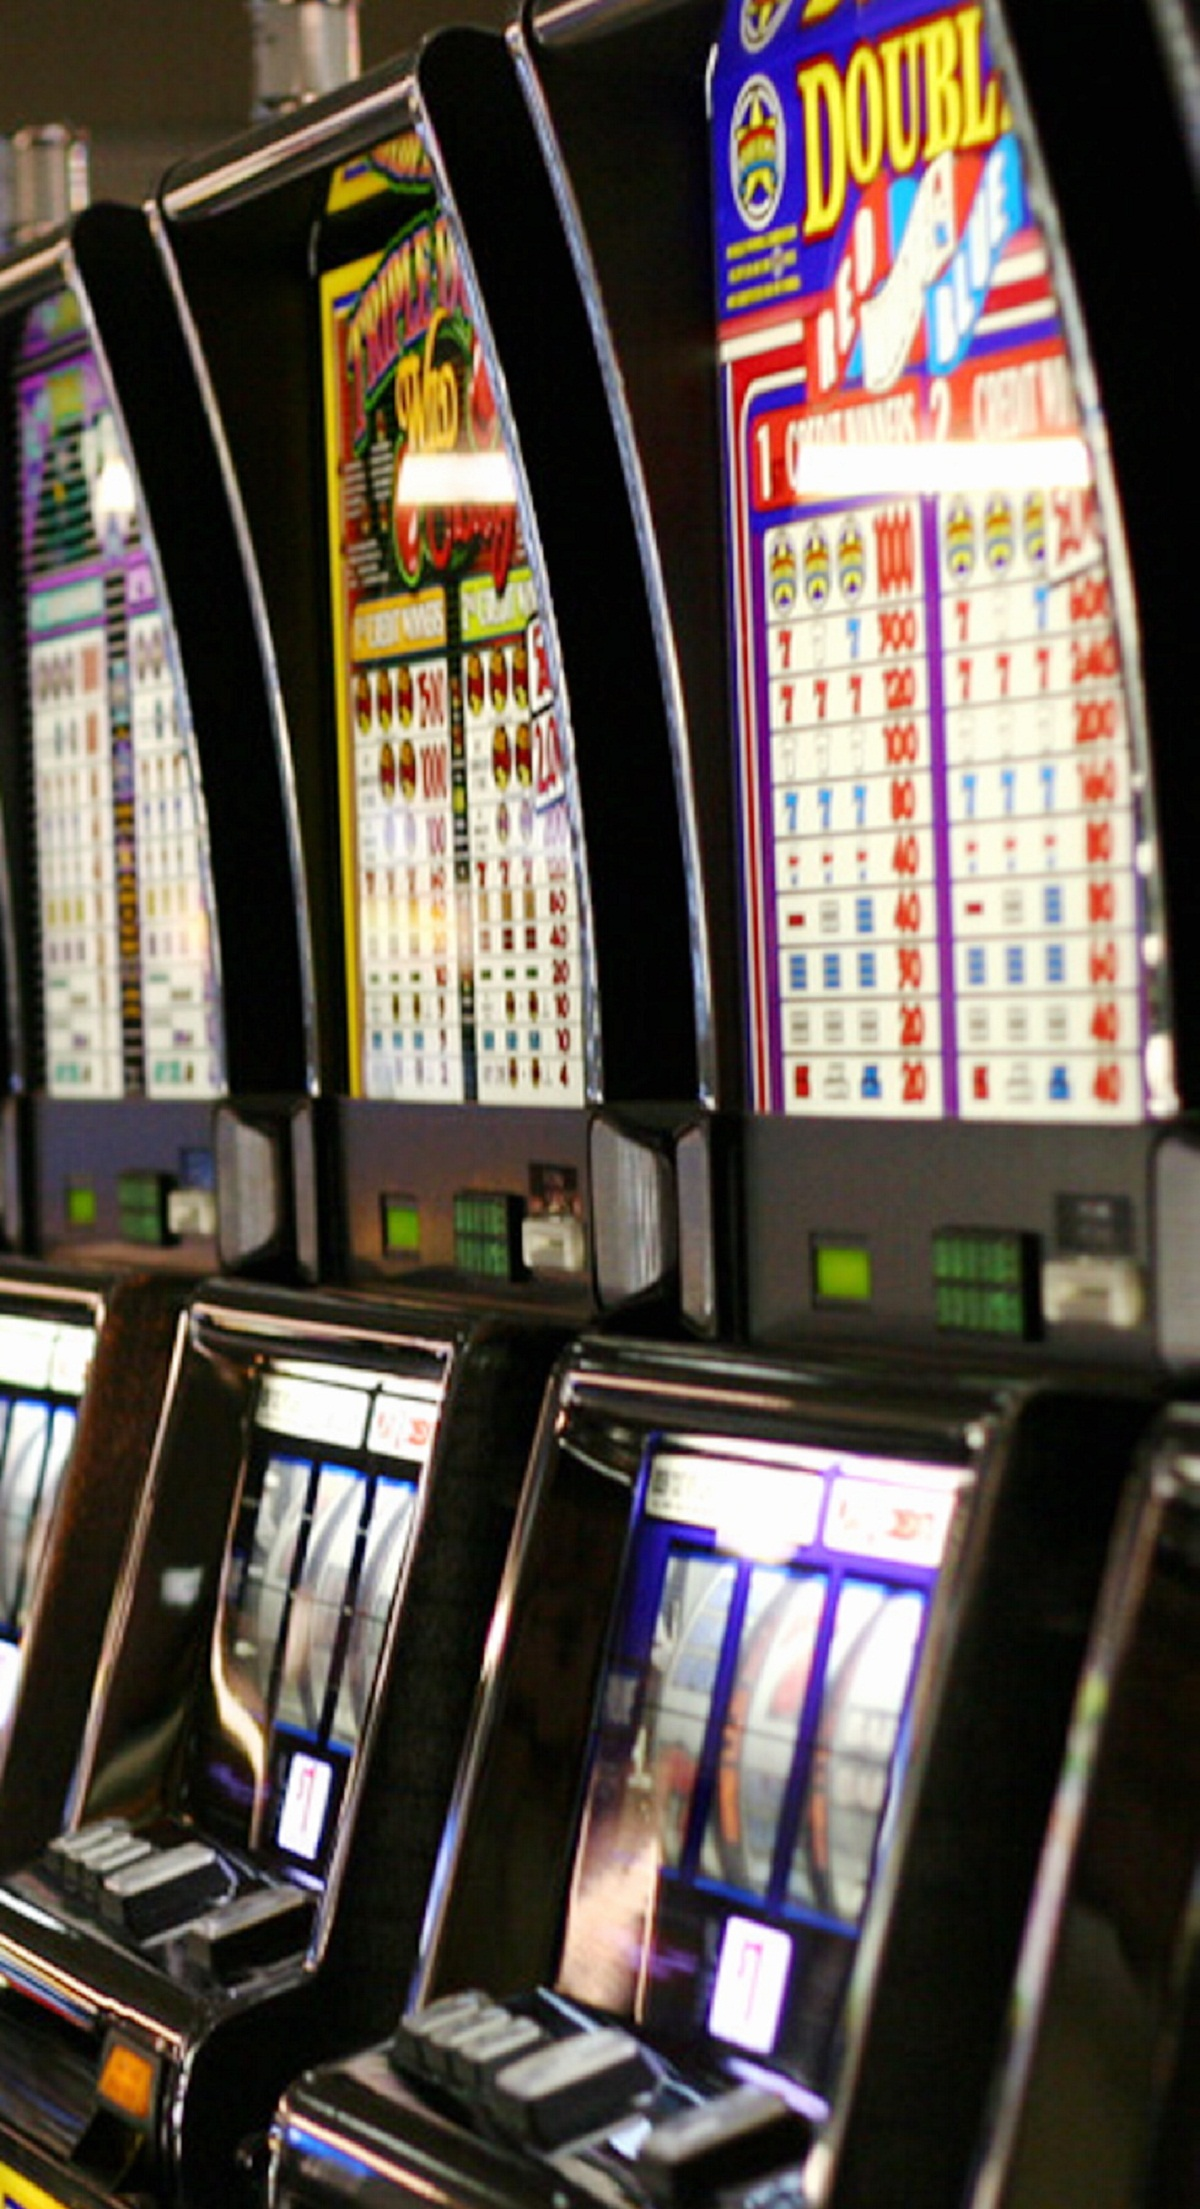 Bradford district gamblers lose £9.5m in a year on betting machines